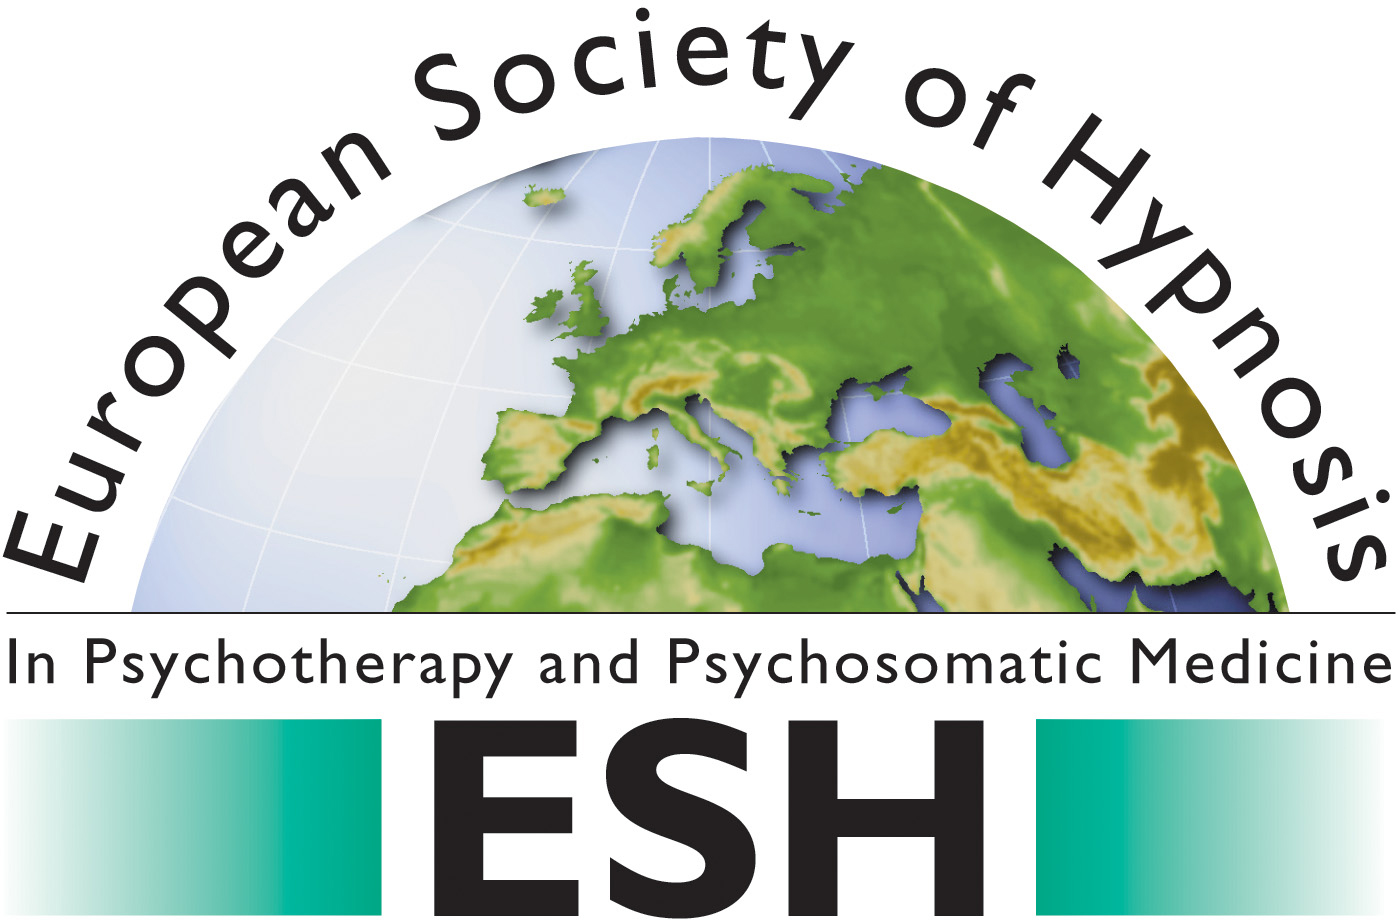 The old ESH logo